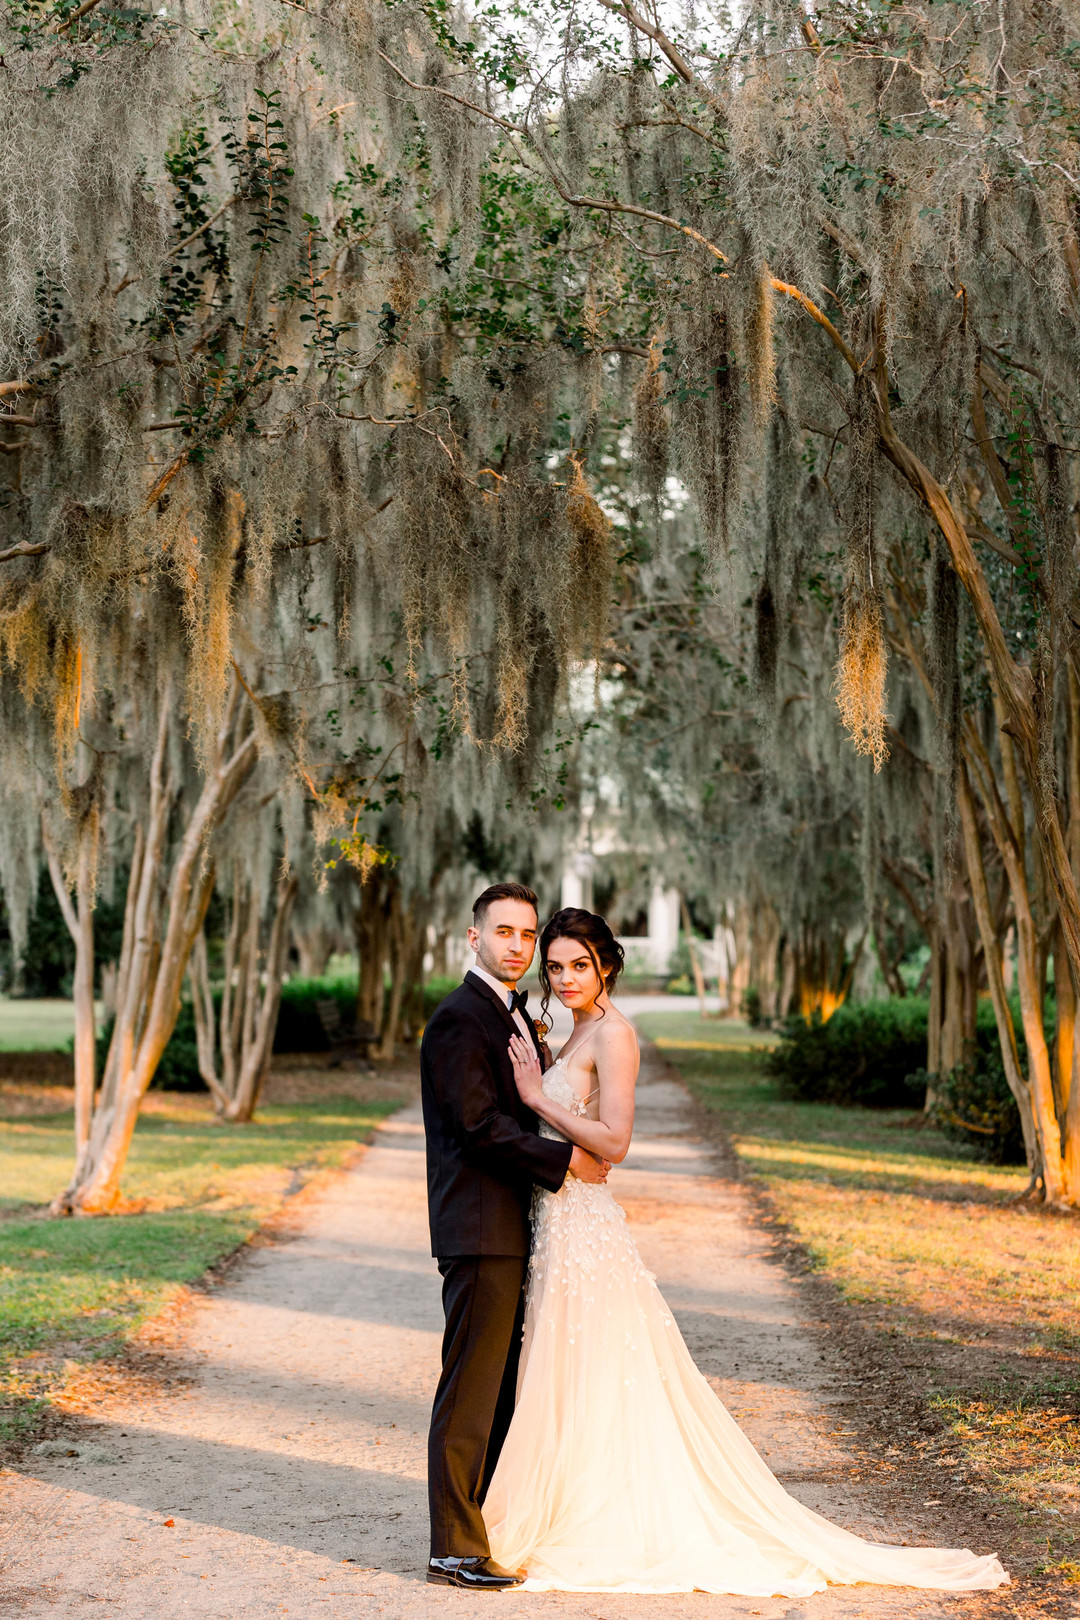 downtown-charleston-wedding-elopement-20.jpg